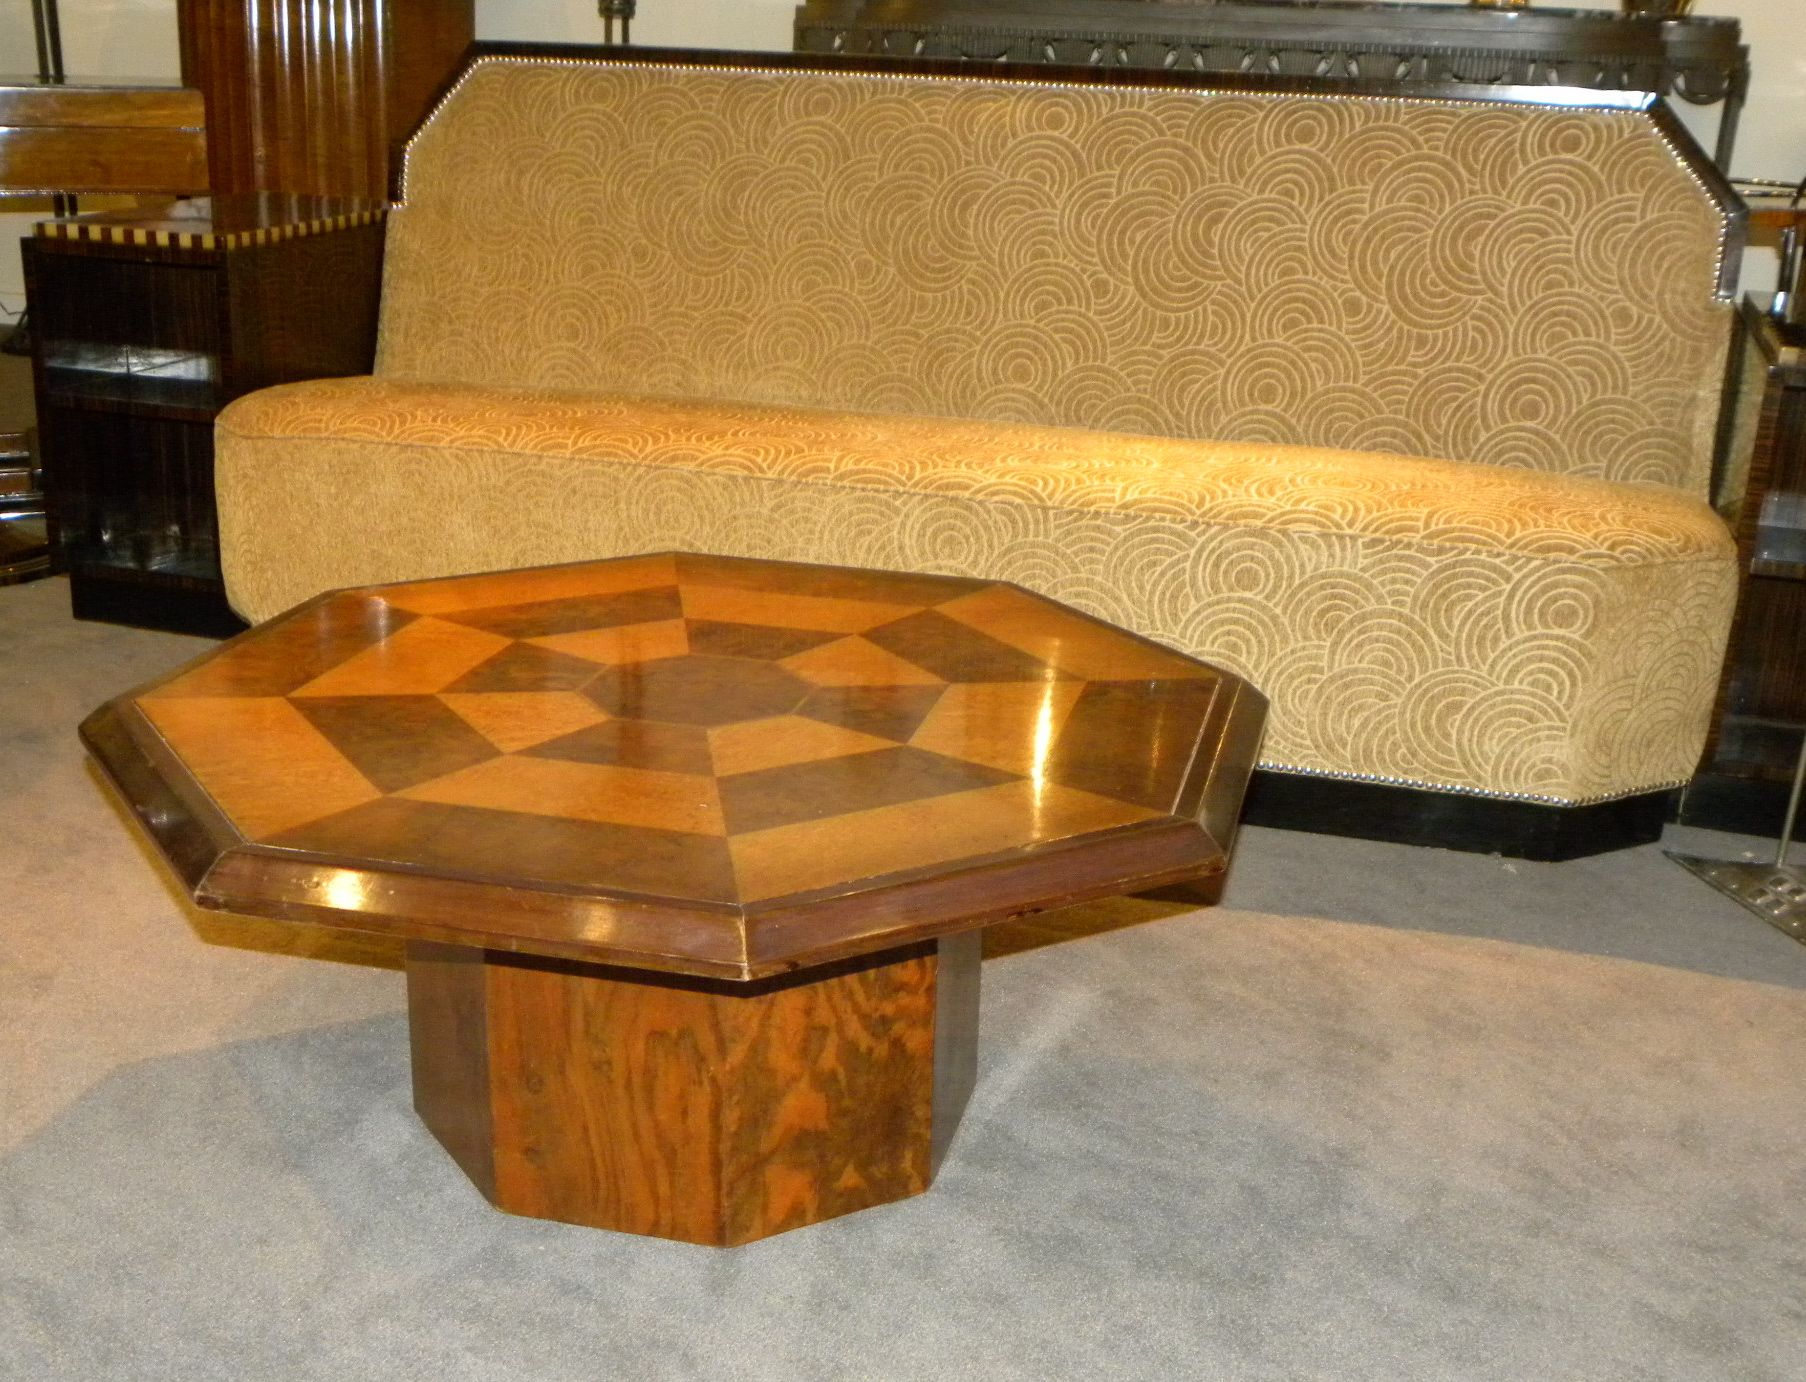 Original Two tone Octagon Coffee Table Small Tables